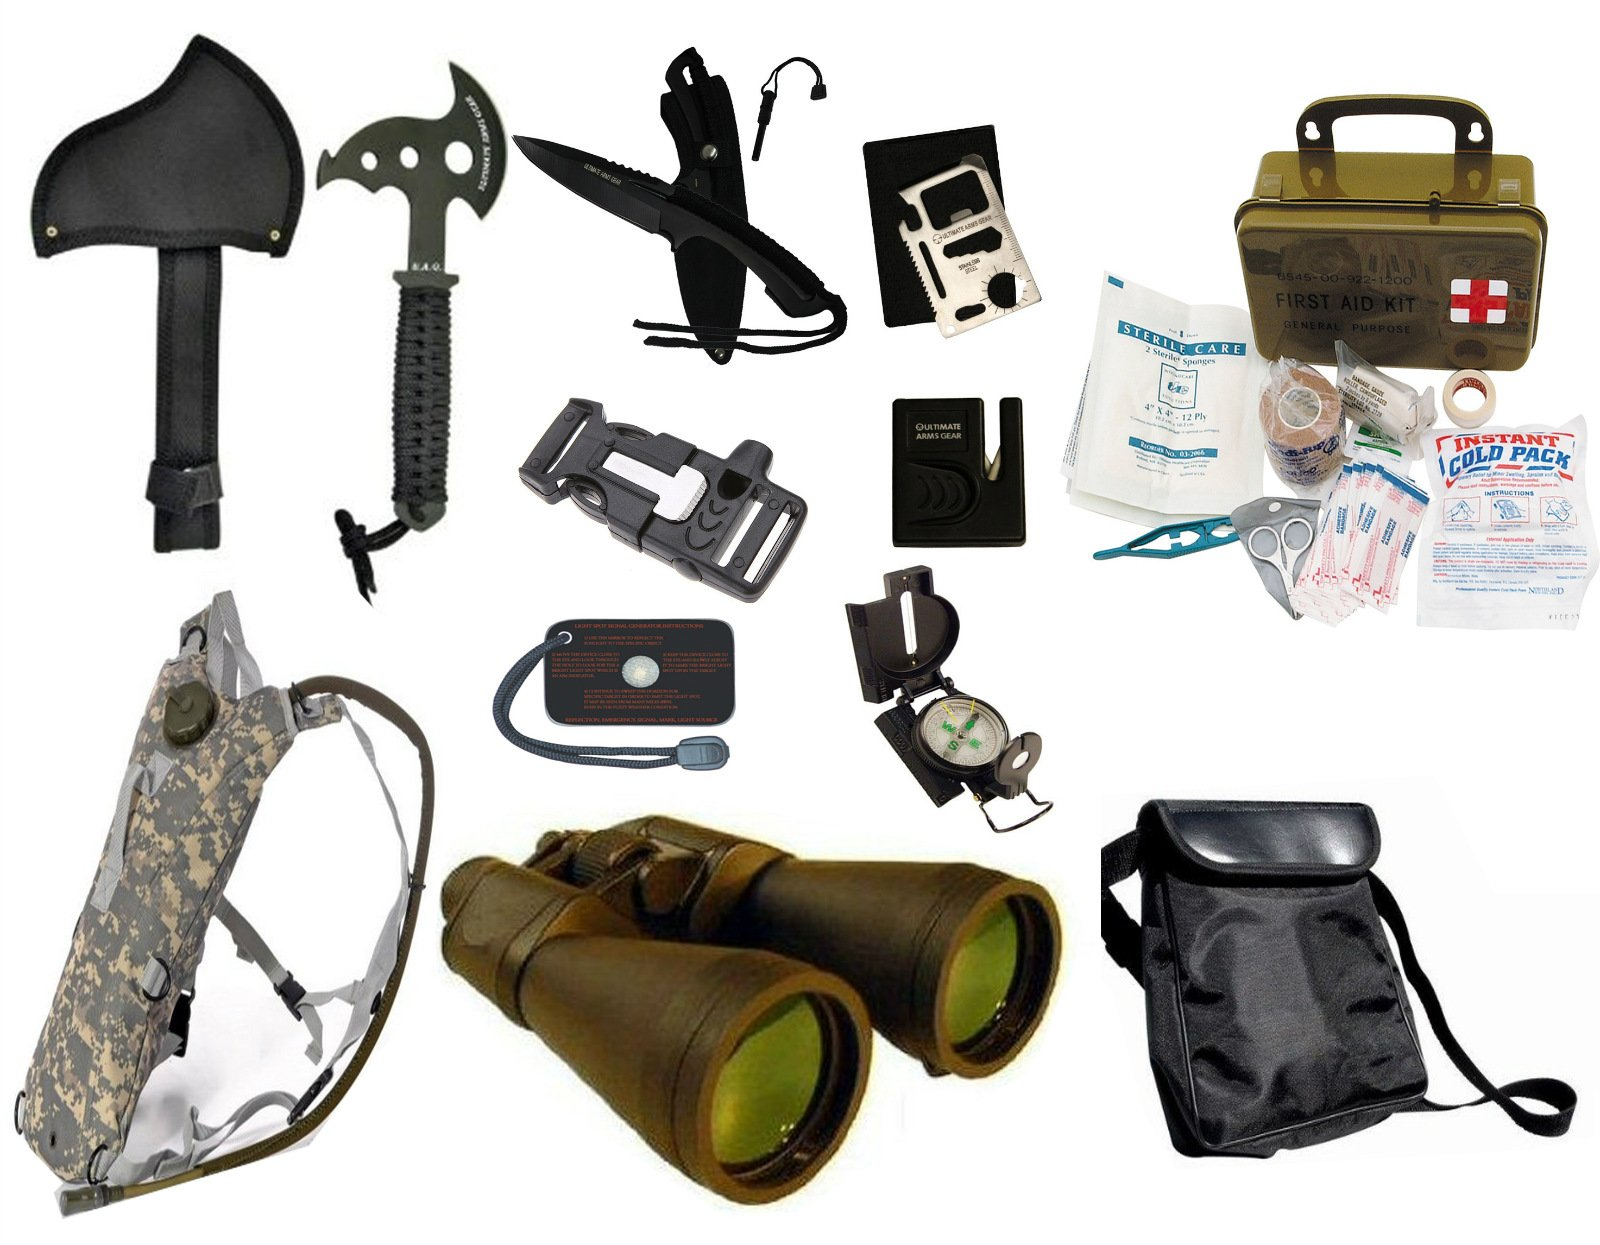 Survival Camping Hiking 20X70 Binoculars Green,Emergency First Aid Kit, Sharpener, Axe, Fire Blade, Whistle Flint Striker Belt Buckle, ACU Hydration Backpack, Multi Tool, Compass, Signal Mirror